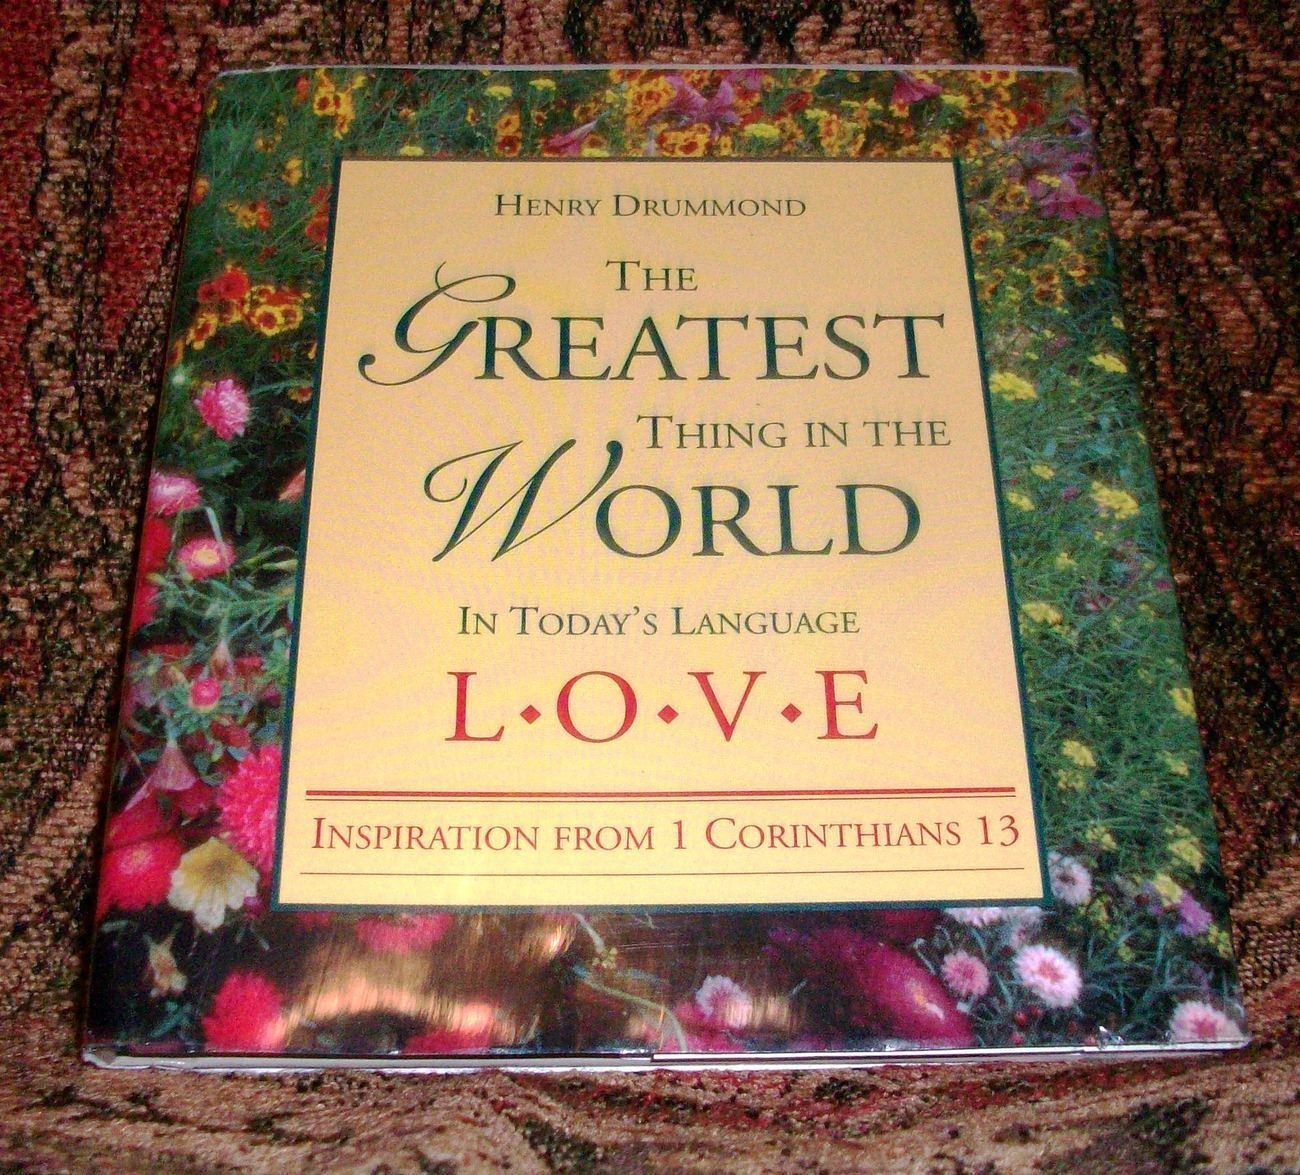 The Greatest Thing in the World In Today's Language LOVE by Henry Drummond